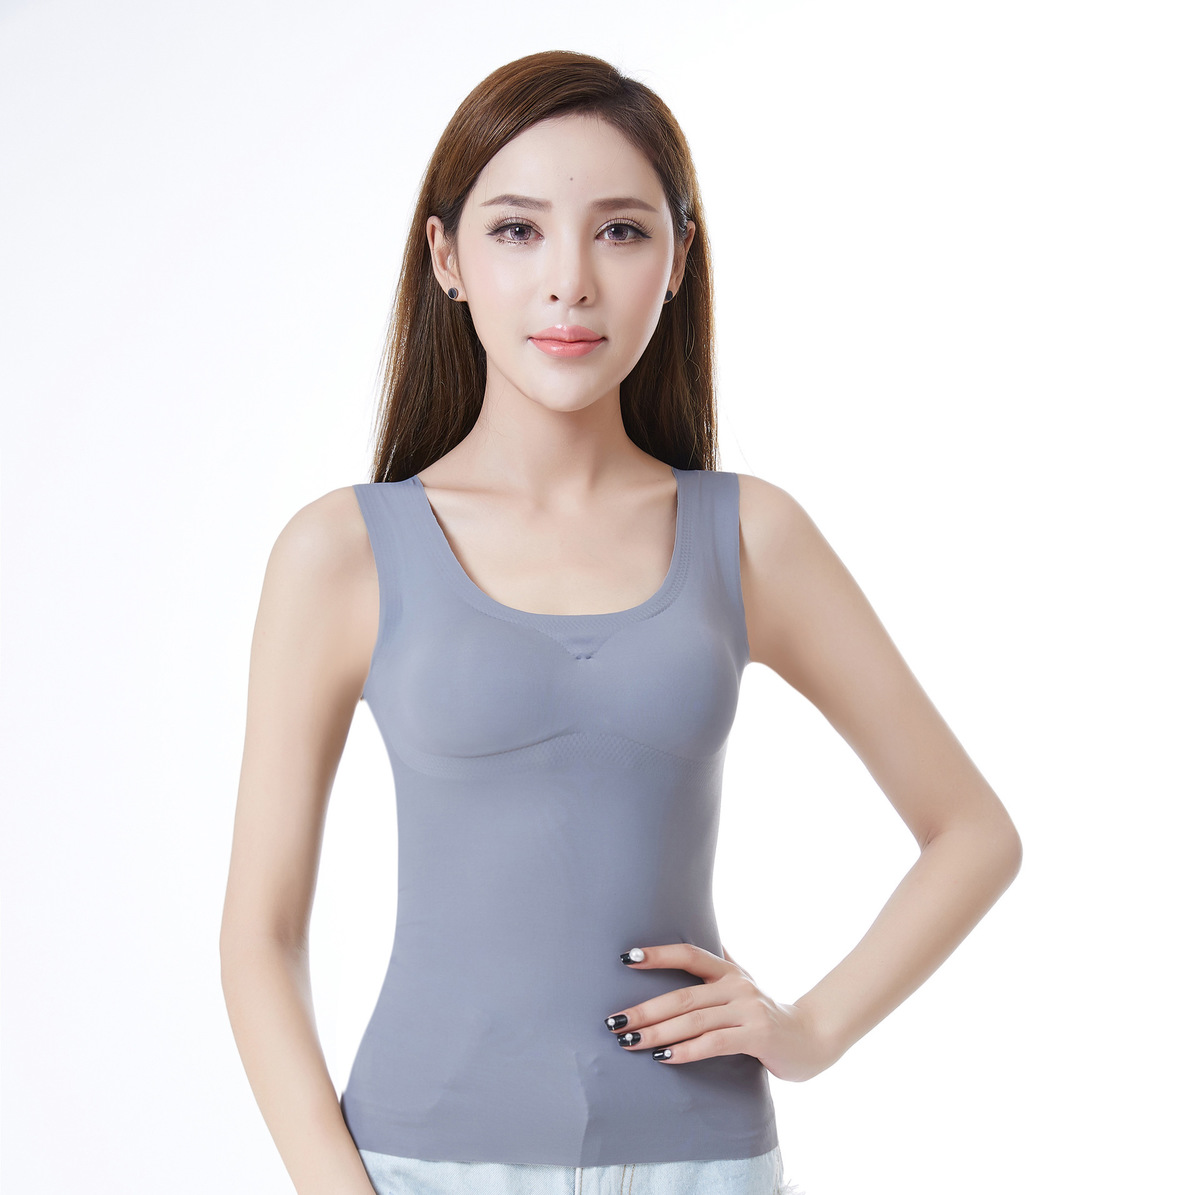 Bra Cami Tank Top Women Body Removable Underwear Slimming Vest Corset Shapewear  Vest